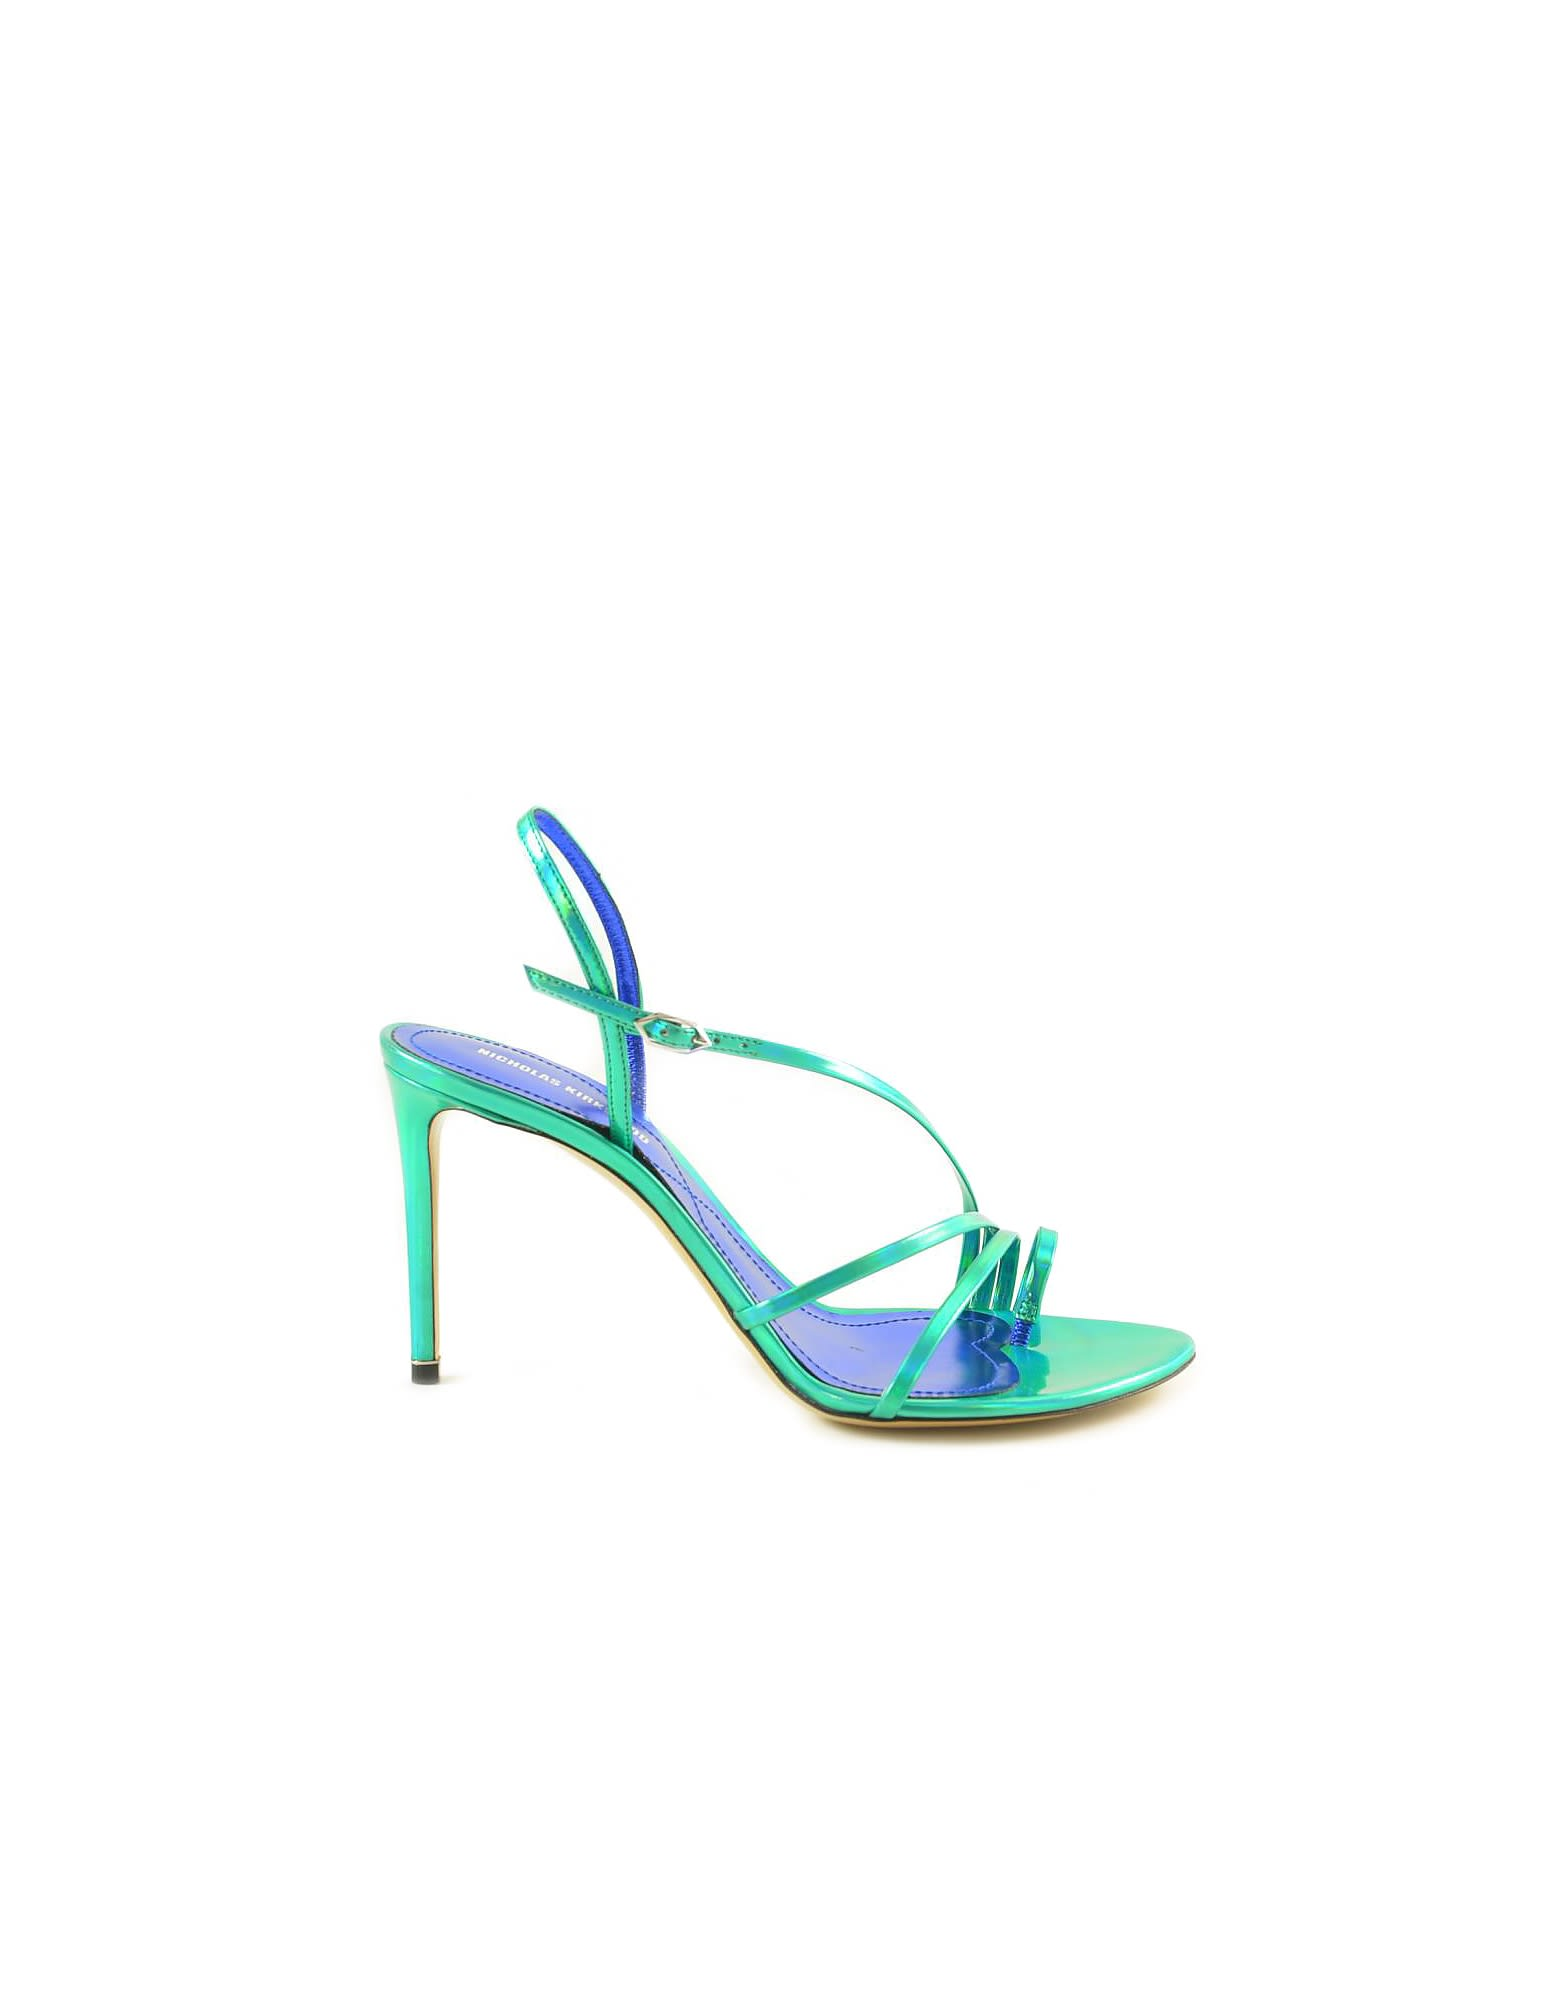 Buy Nicholas Kirkwood Laminated Green Leather Sandals online, shop Nicholas Kirkwood shoes with free shipping